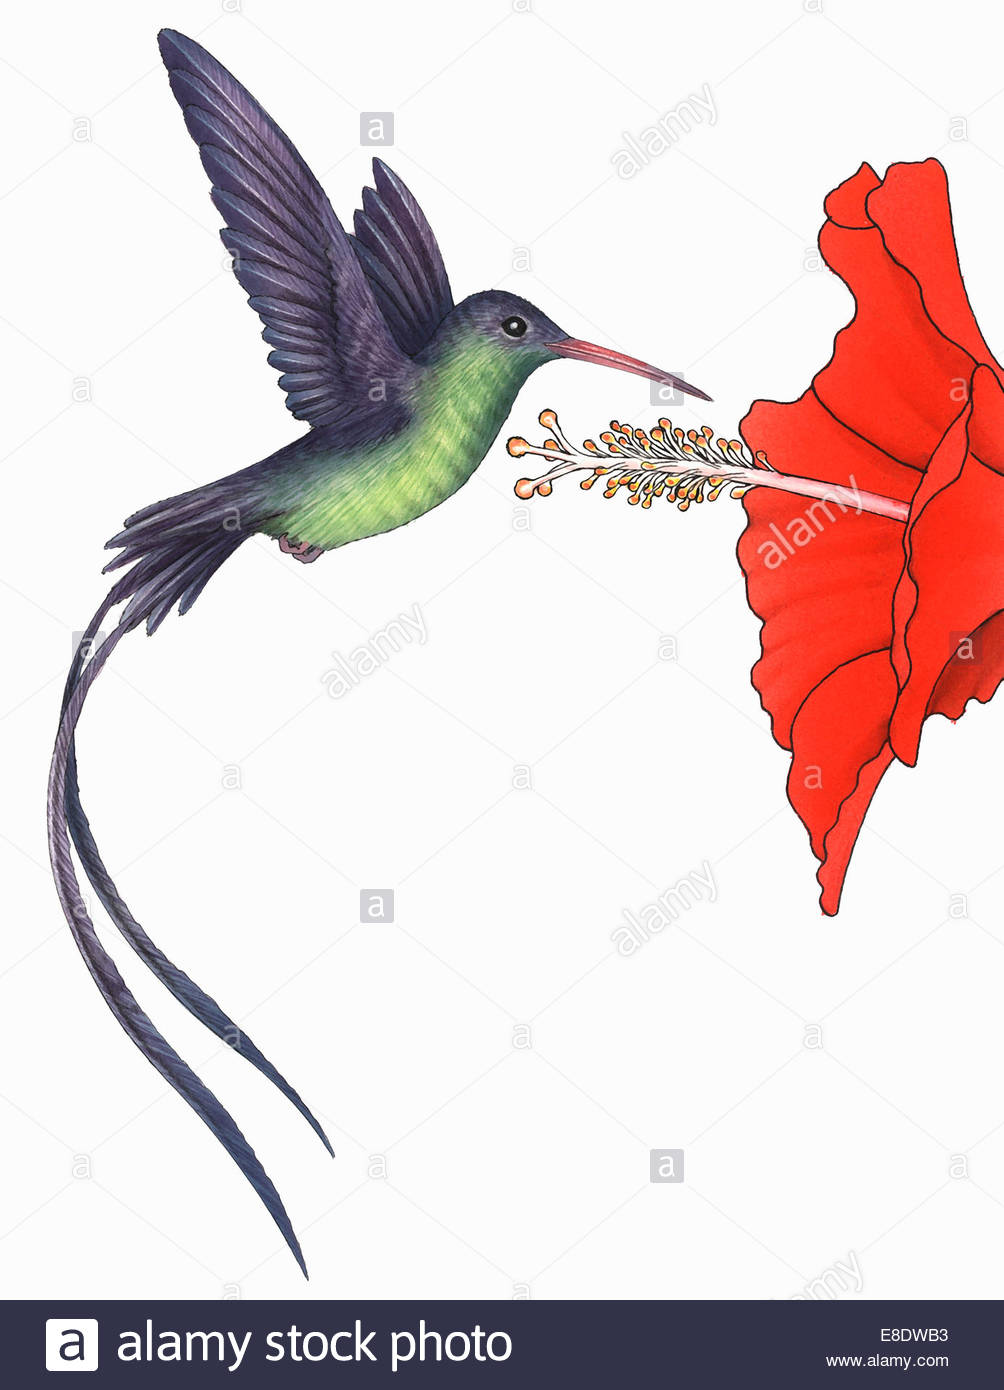 Hummingbird (Mellisuga) hovering near red flower - Stock Image